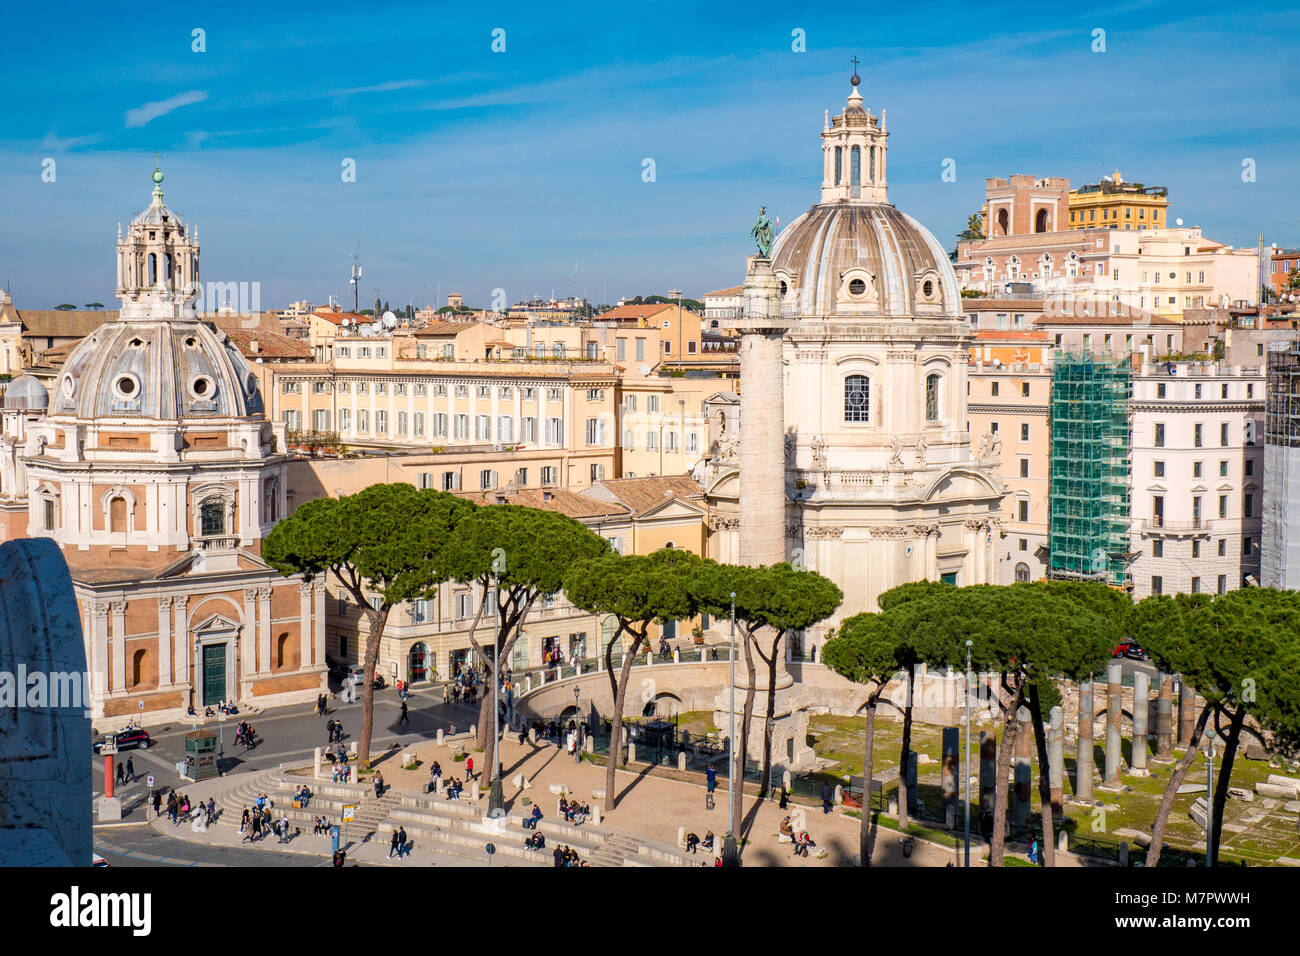 Trajan's Forum and the Trajans Column as seen from above - Stock Image